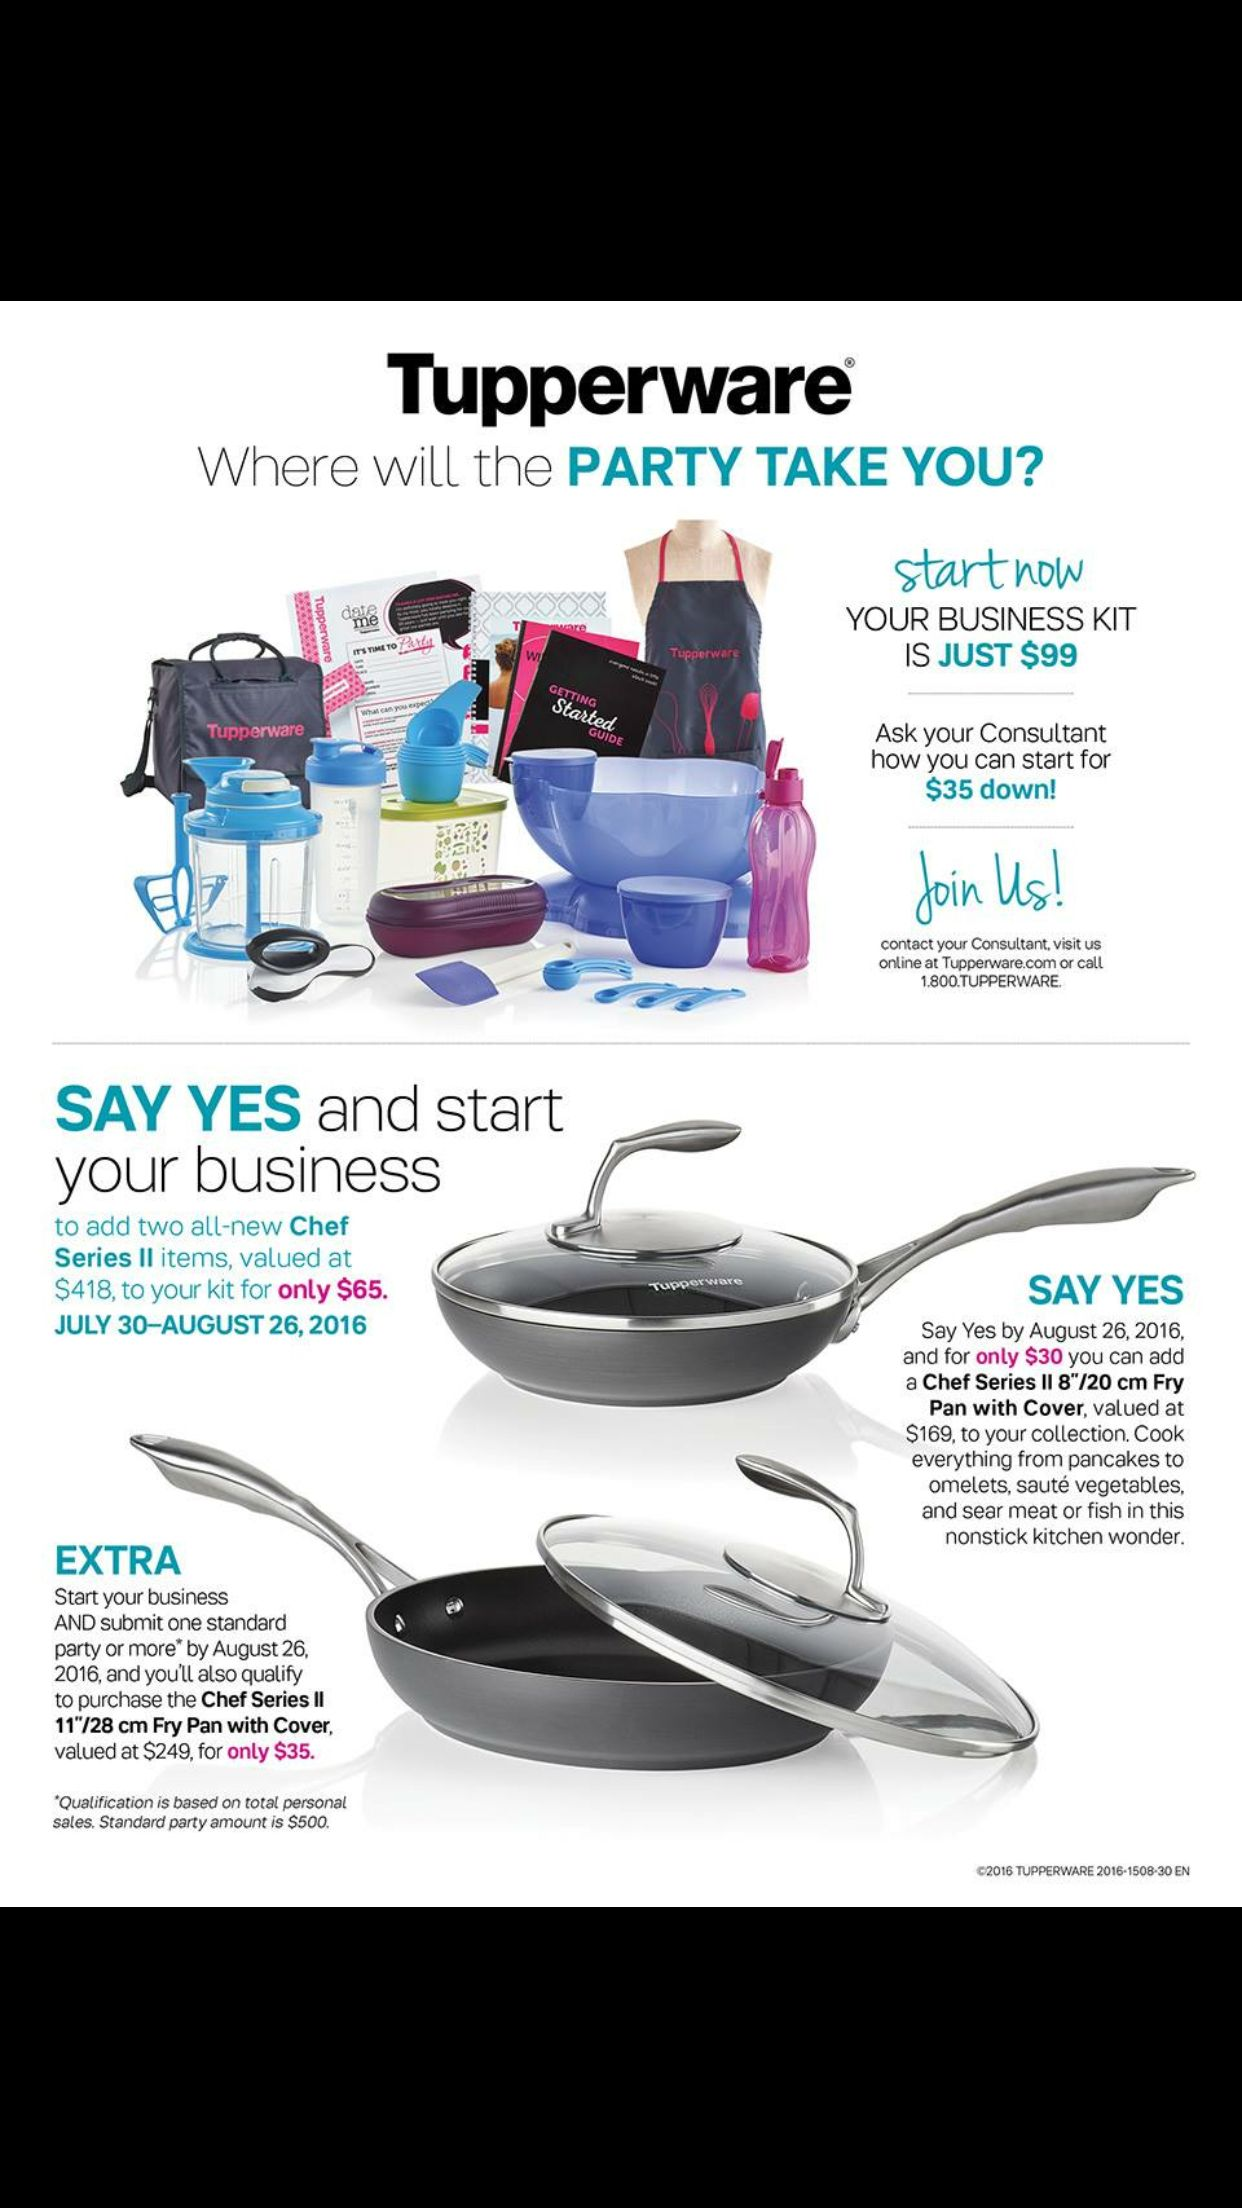 Omgosh if you have thought about joining tupperware